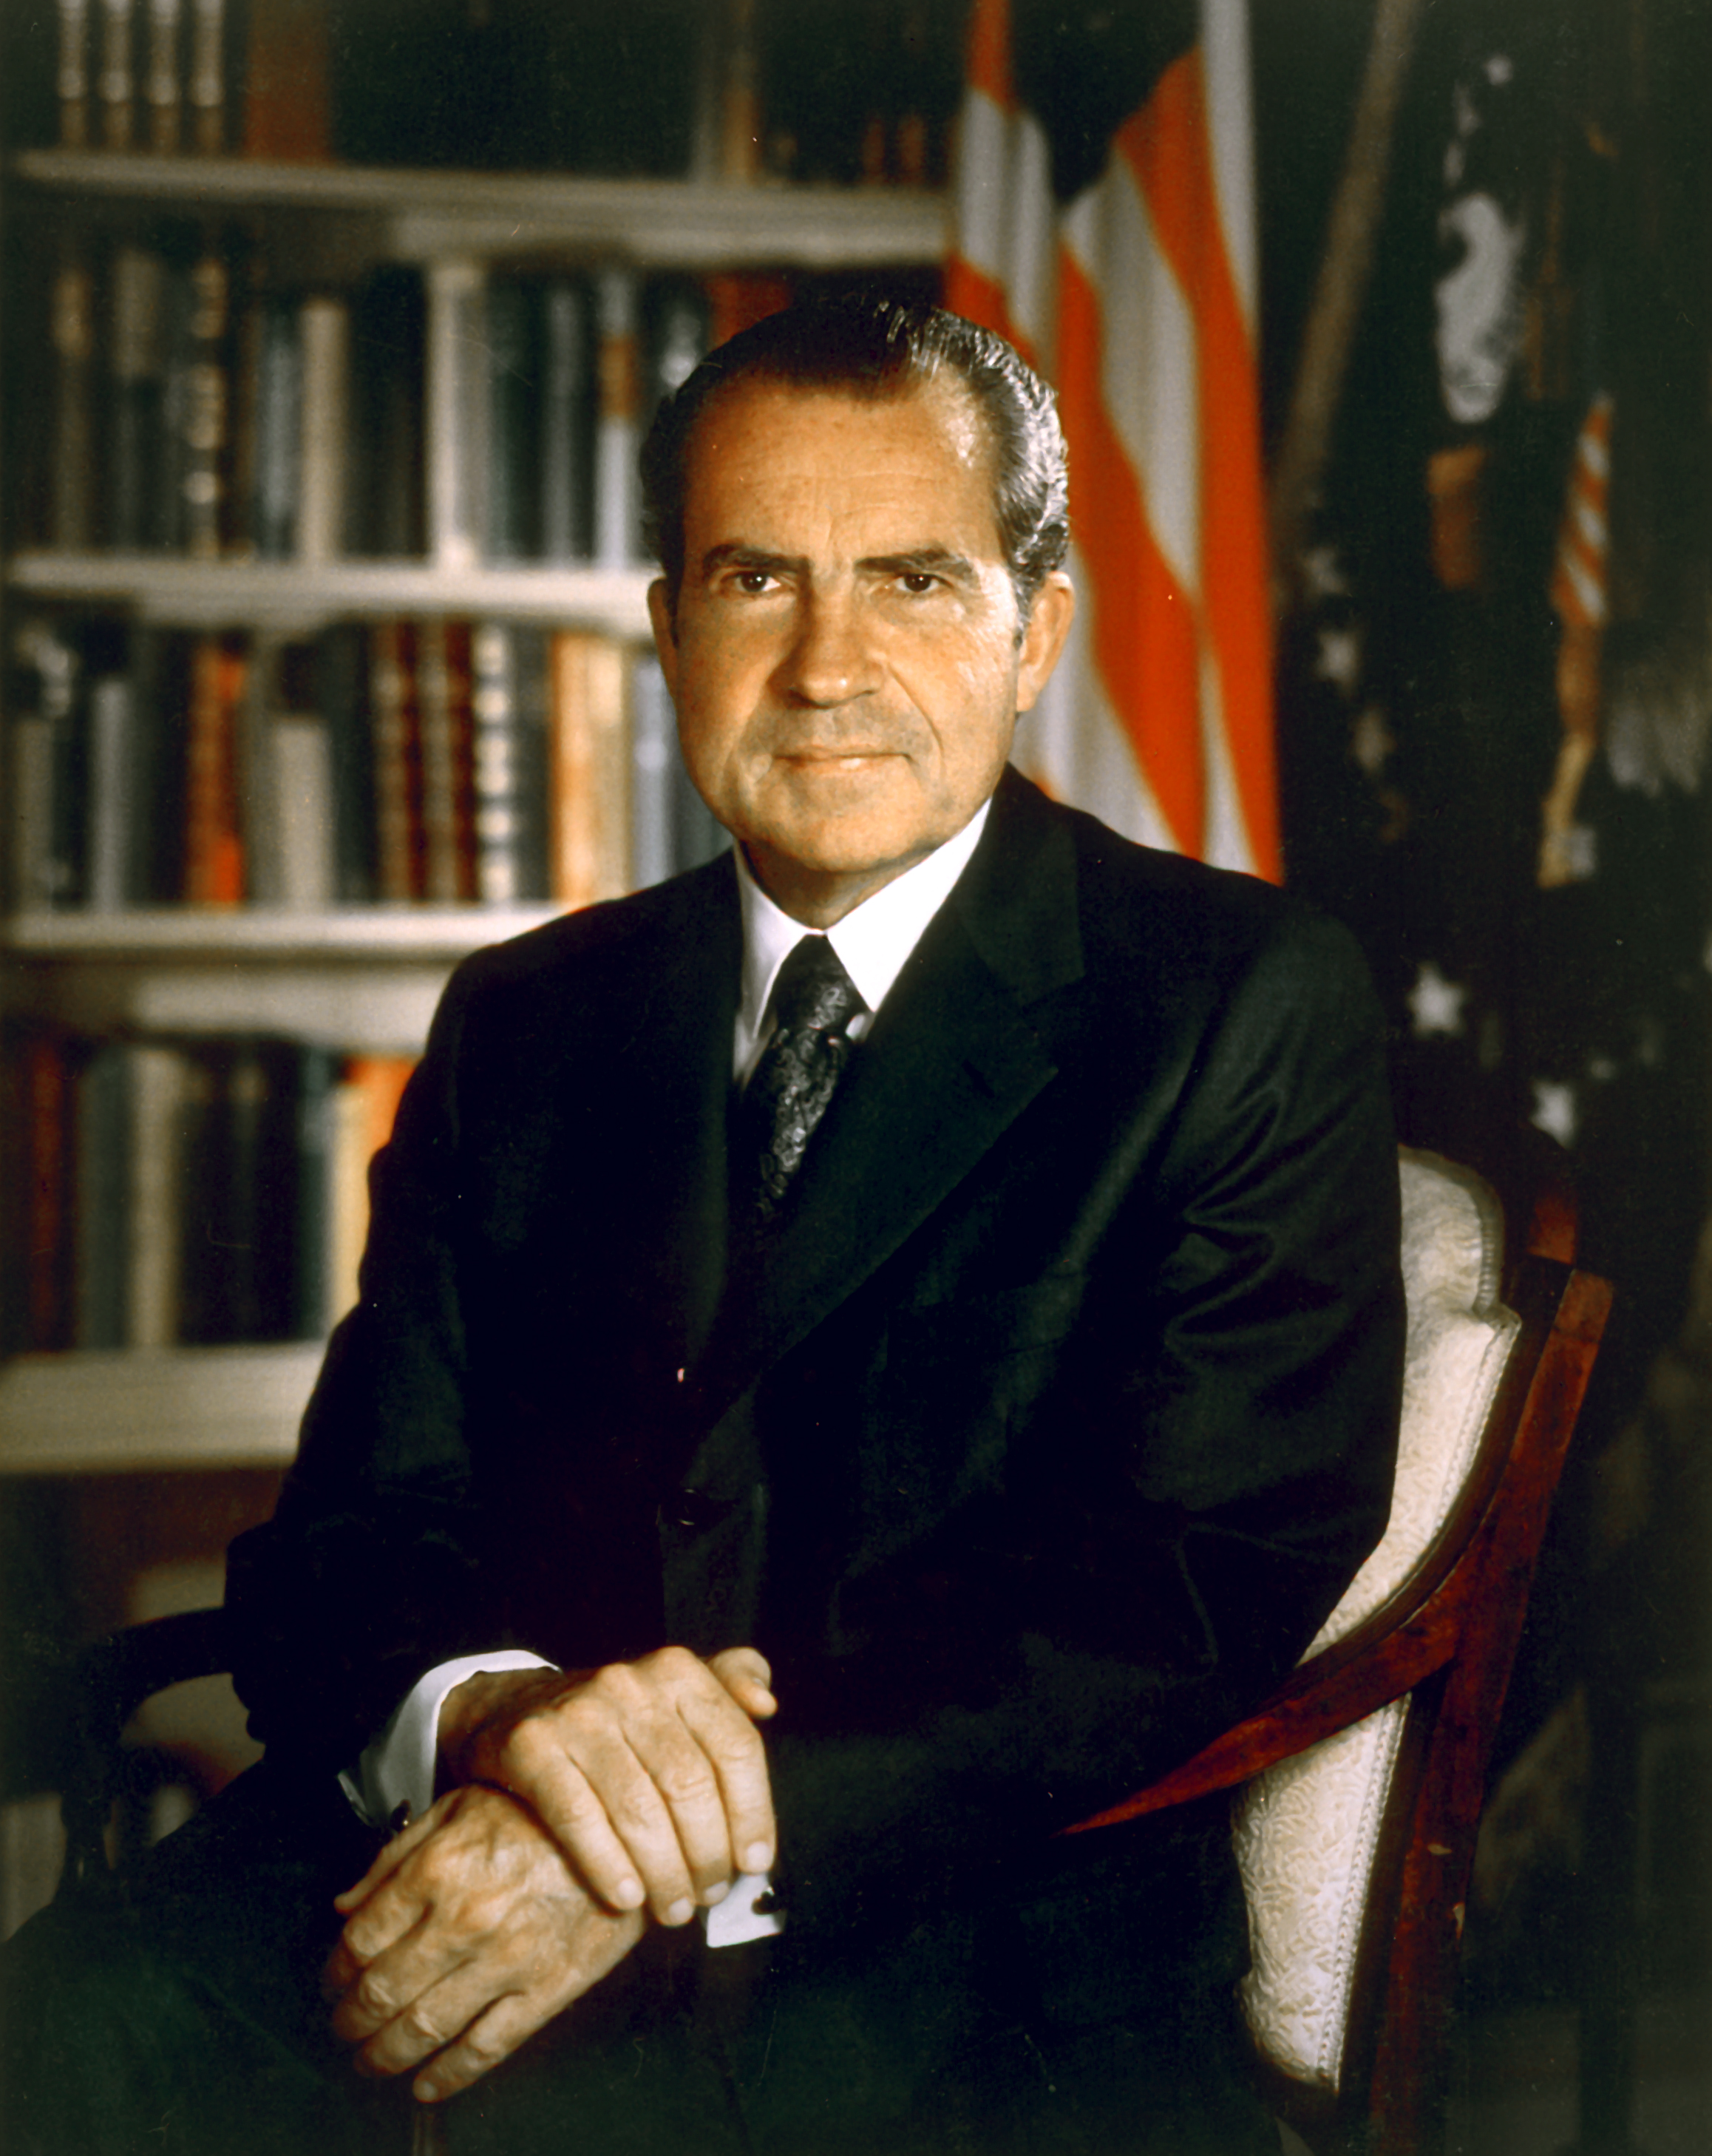 a biography of richard m nixon as the first president of the united states A case in which the court held that the president does not have executive privilege in richard m nixon, et al decided together with nixon v united states.